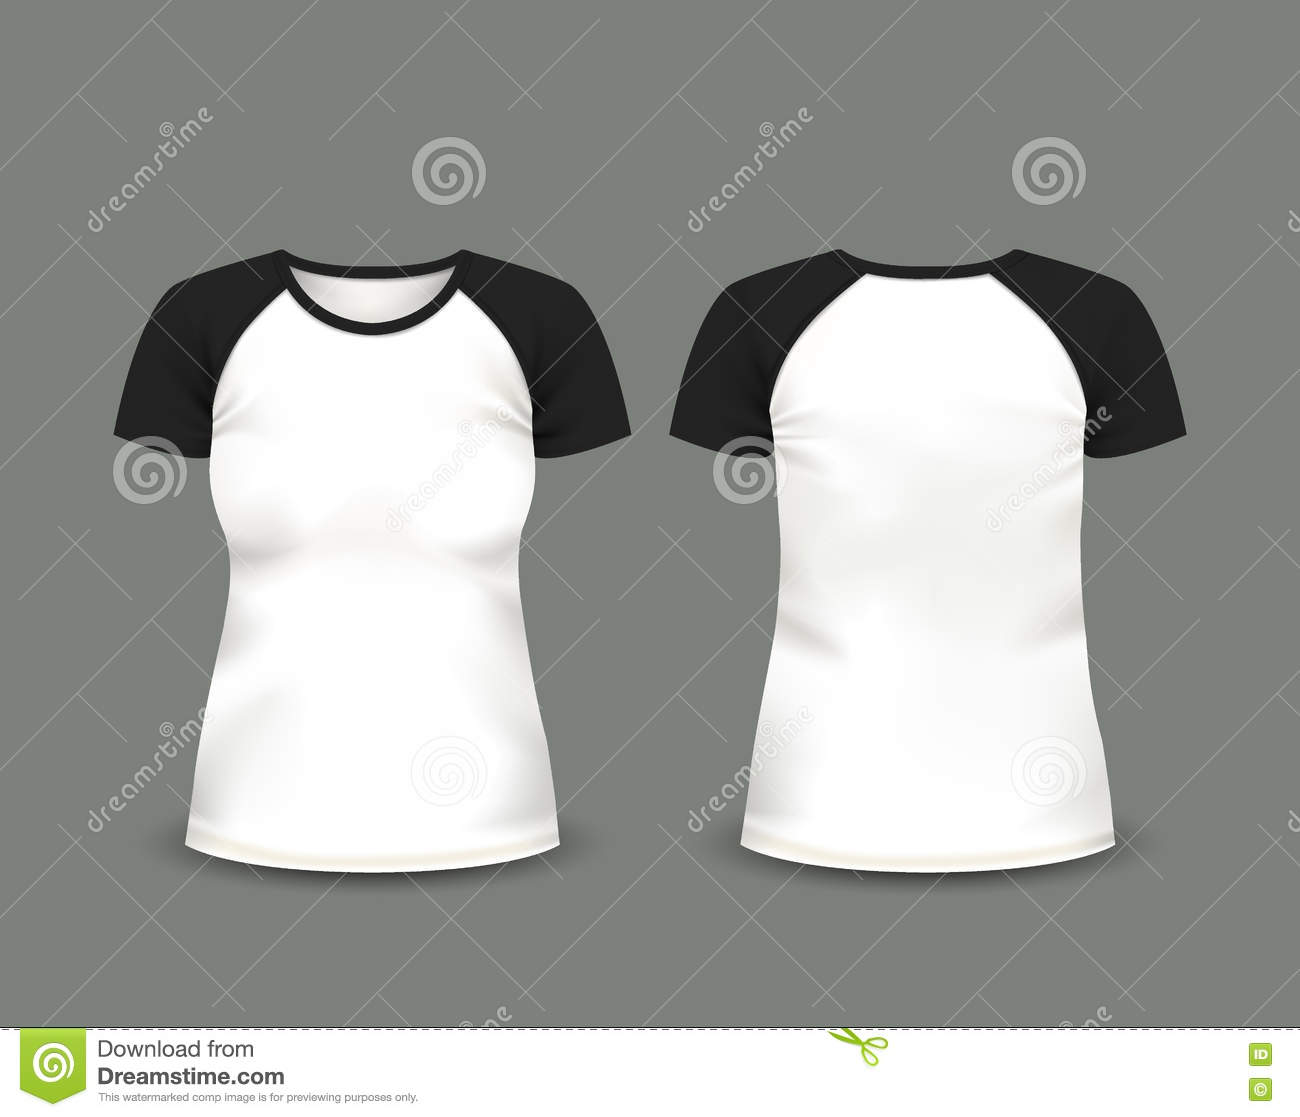 t shirt template with model - t shirt front and back royalty free stock image